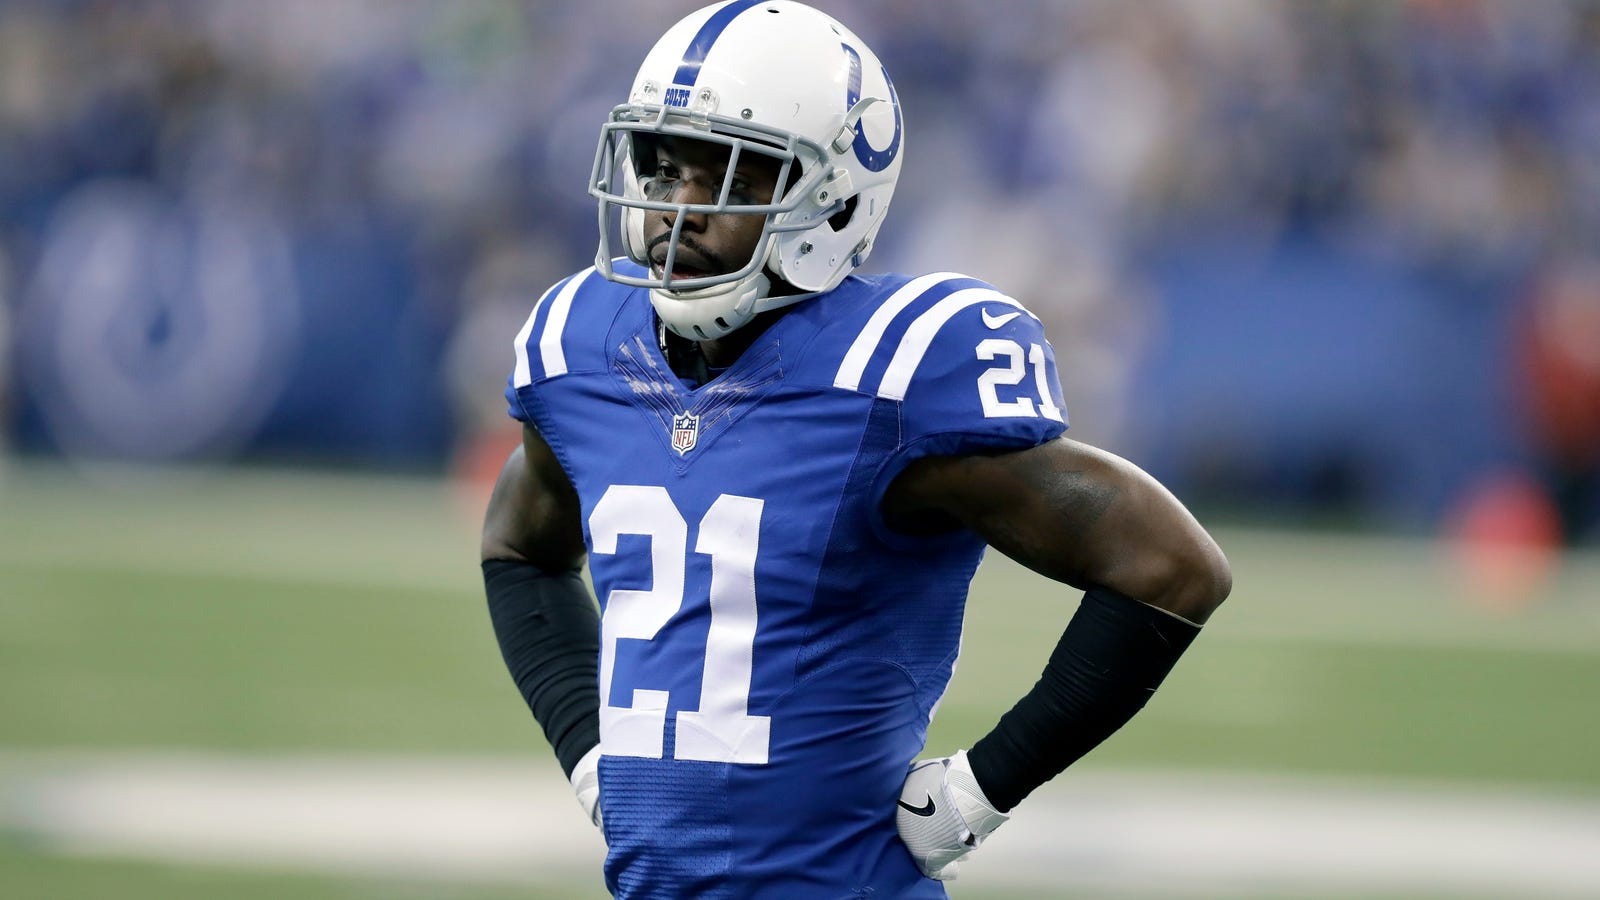 Colts Cut Vontae Davis Before He Can Have Season Ending Surgery